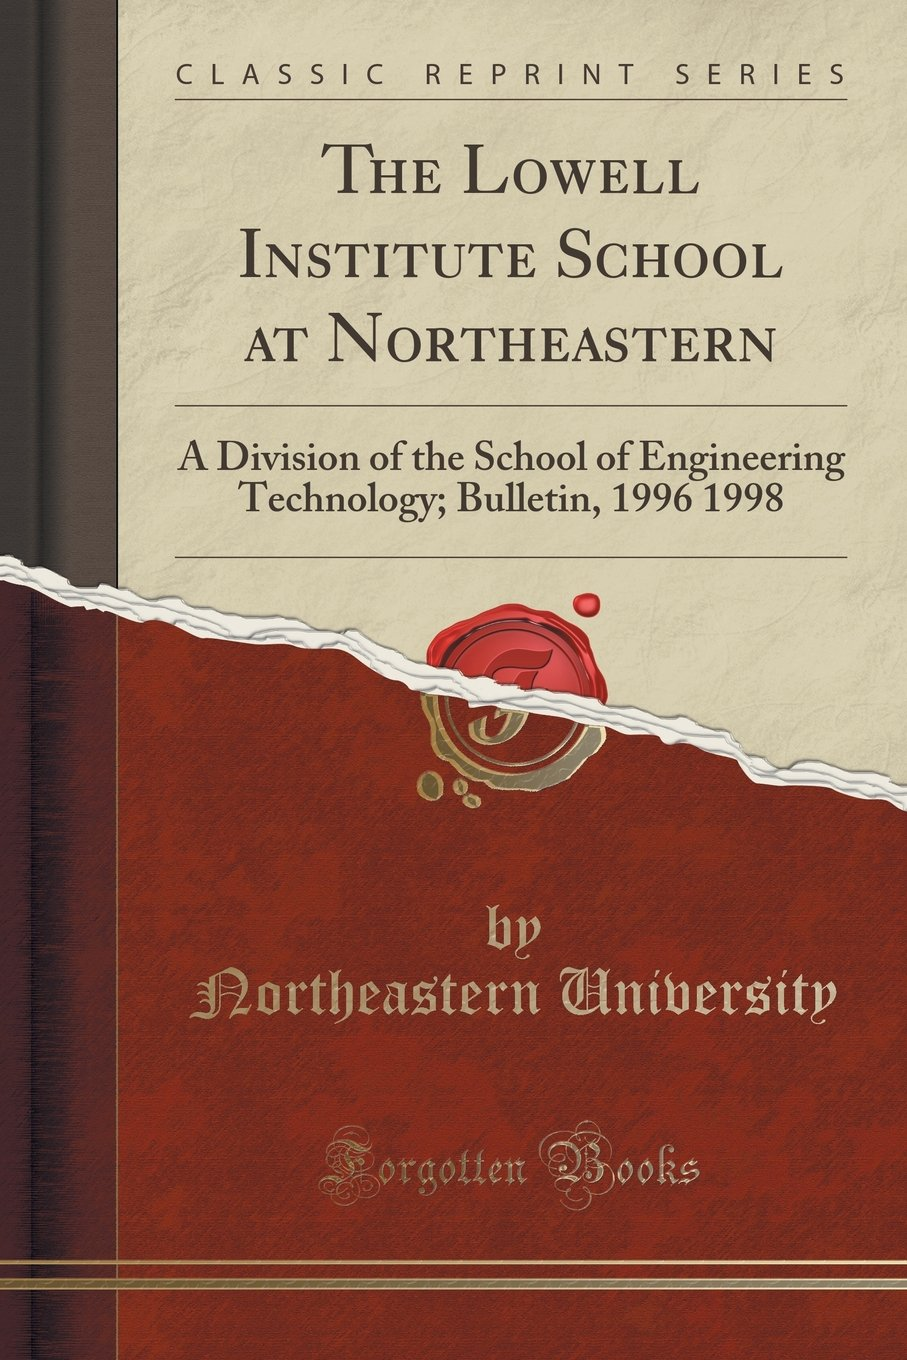 The Lowell Institute School at Northeastern: A Division of the School of Engineering Technology; Bulletin, 1996 1998 (Classic Reprint) pdf